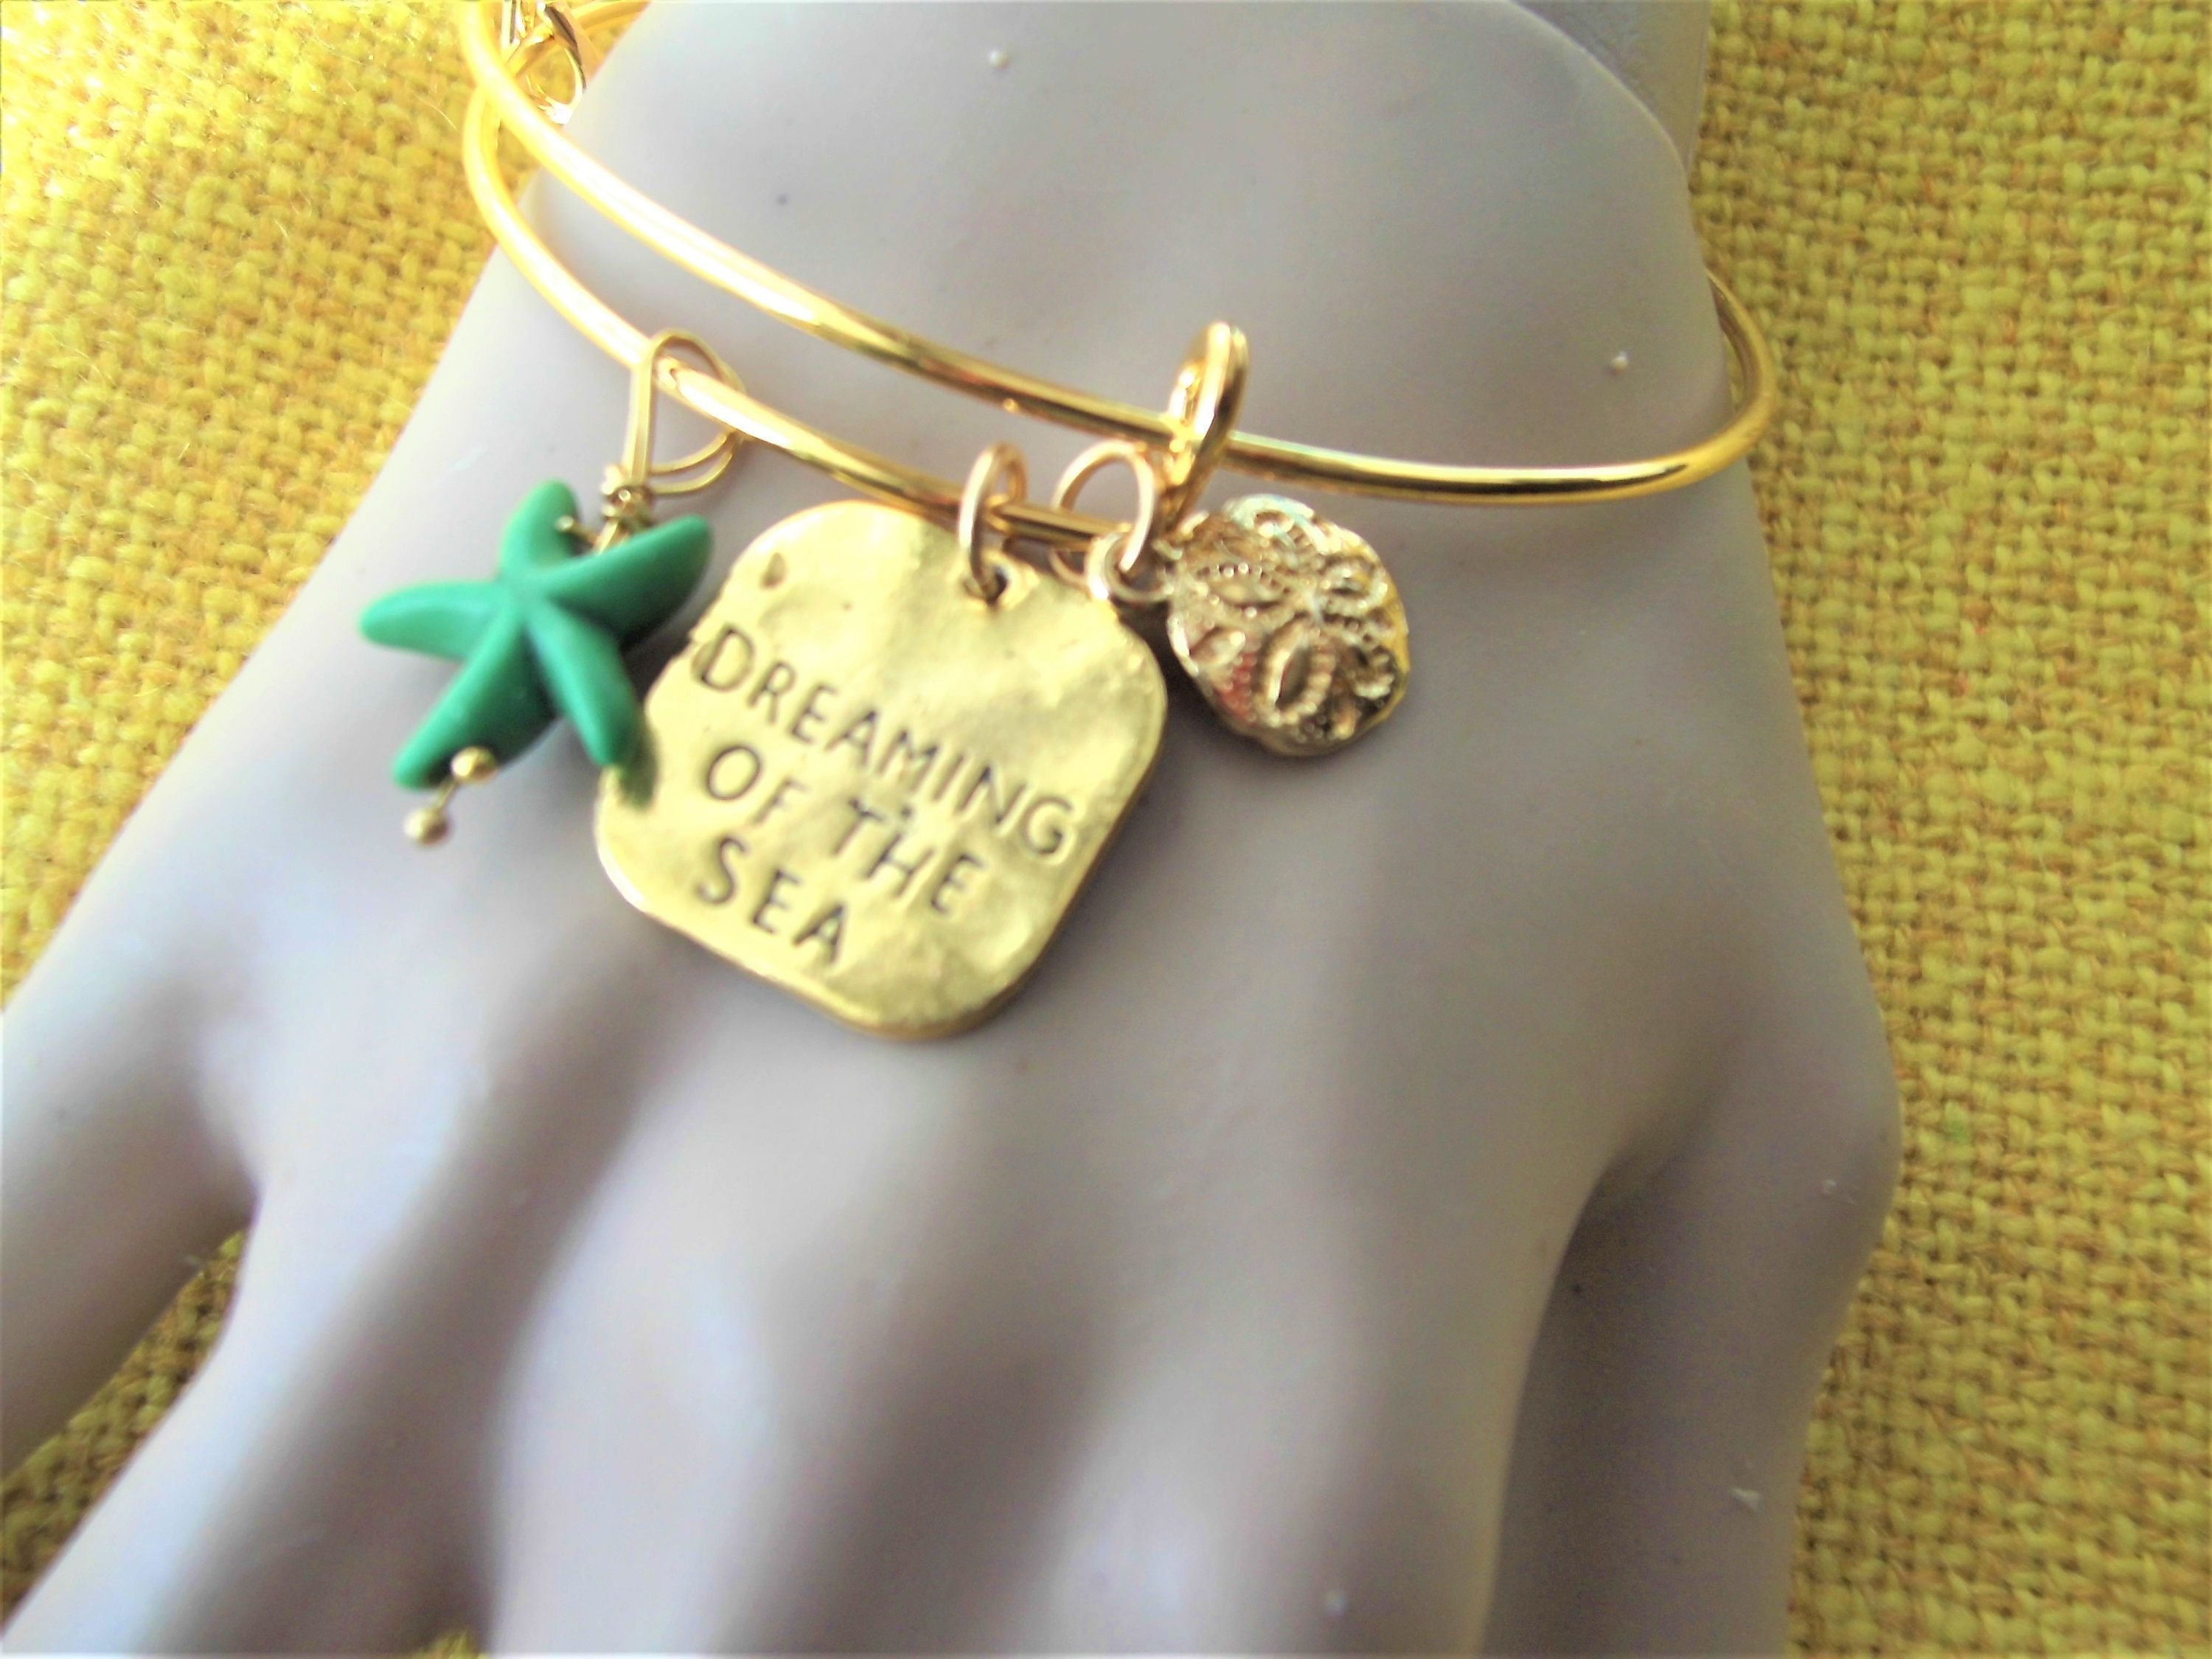 bracelet bangle bracelets gold charm bangles charms claire s life sea